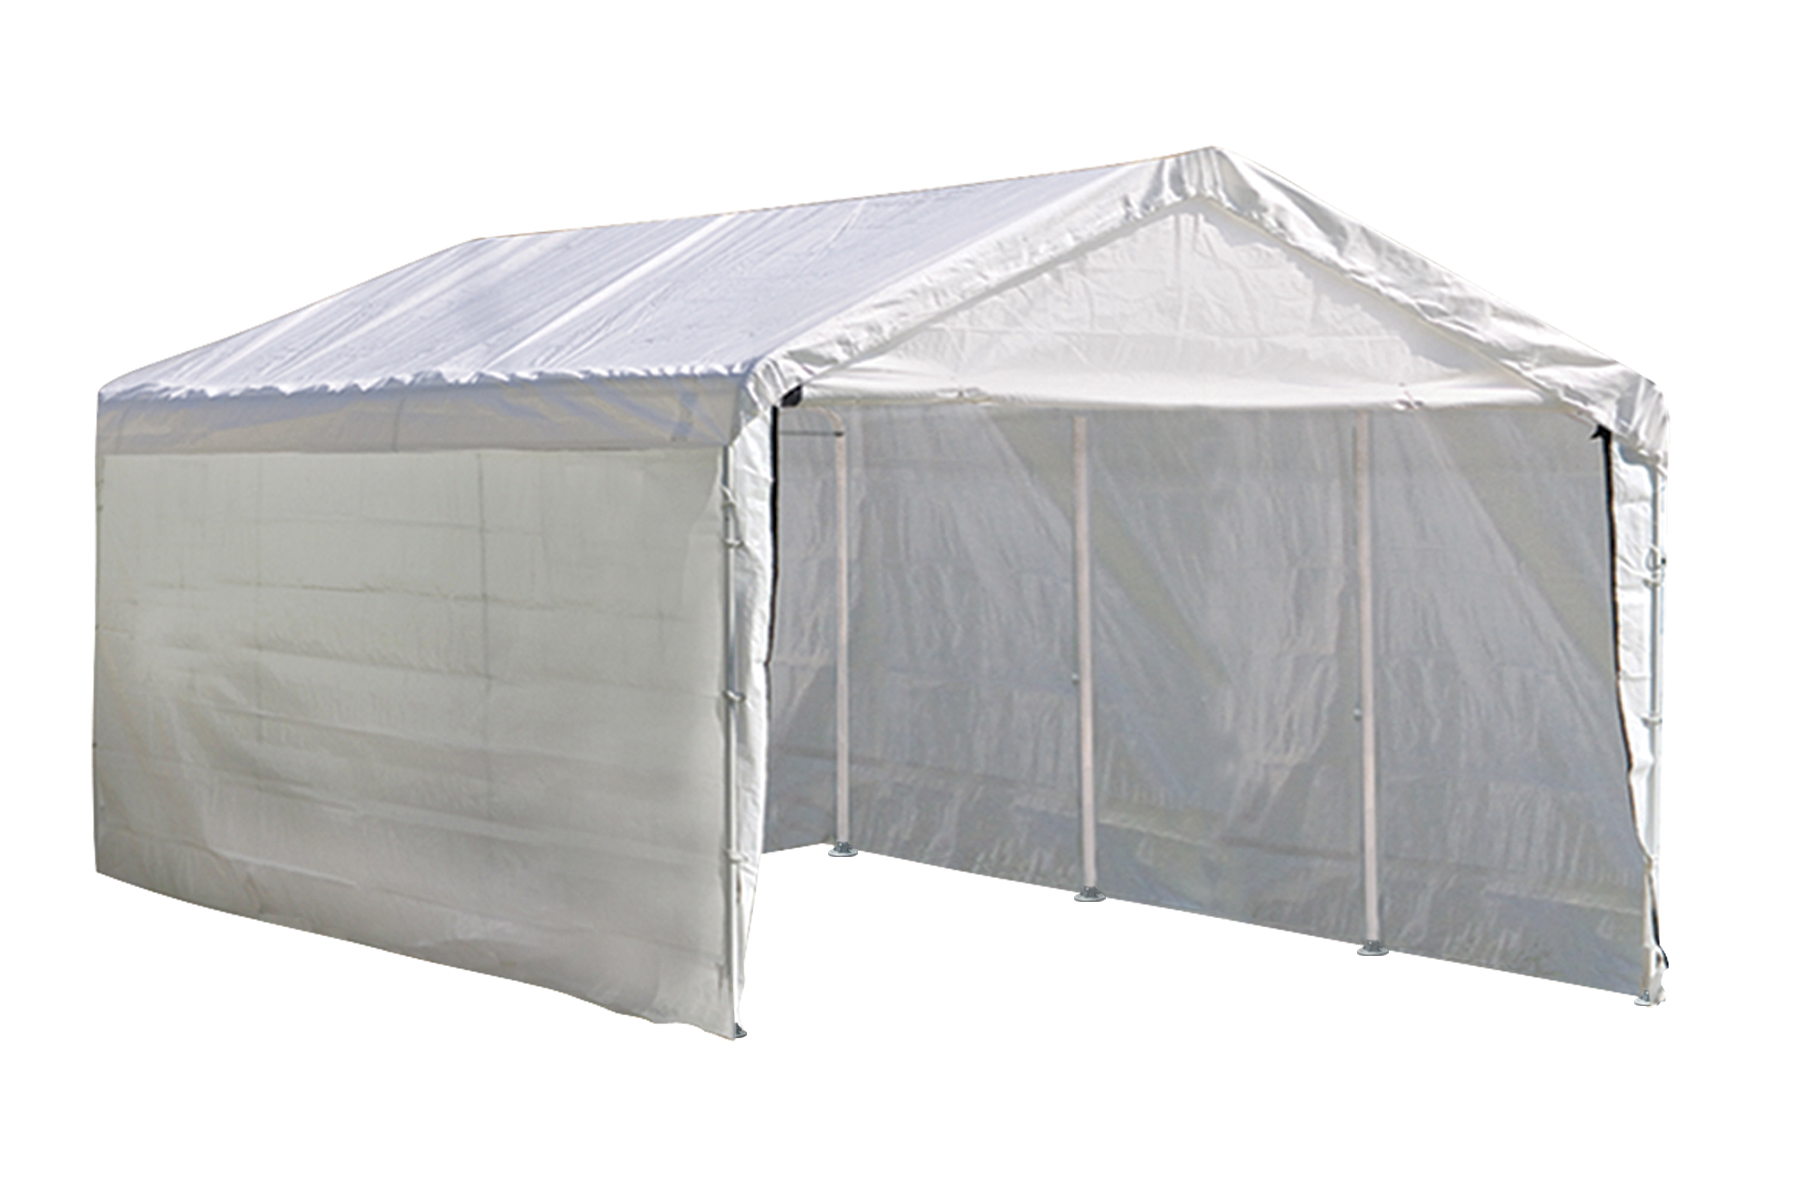 Max AP Canopy, 10'x20', 8-Leg, White Cover, Enclosure & Extension Kits